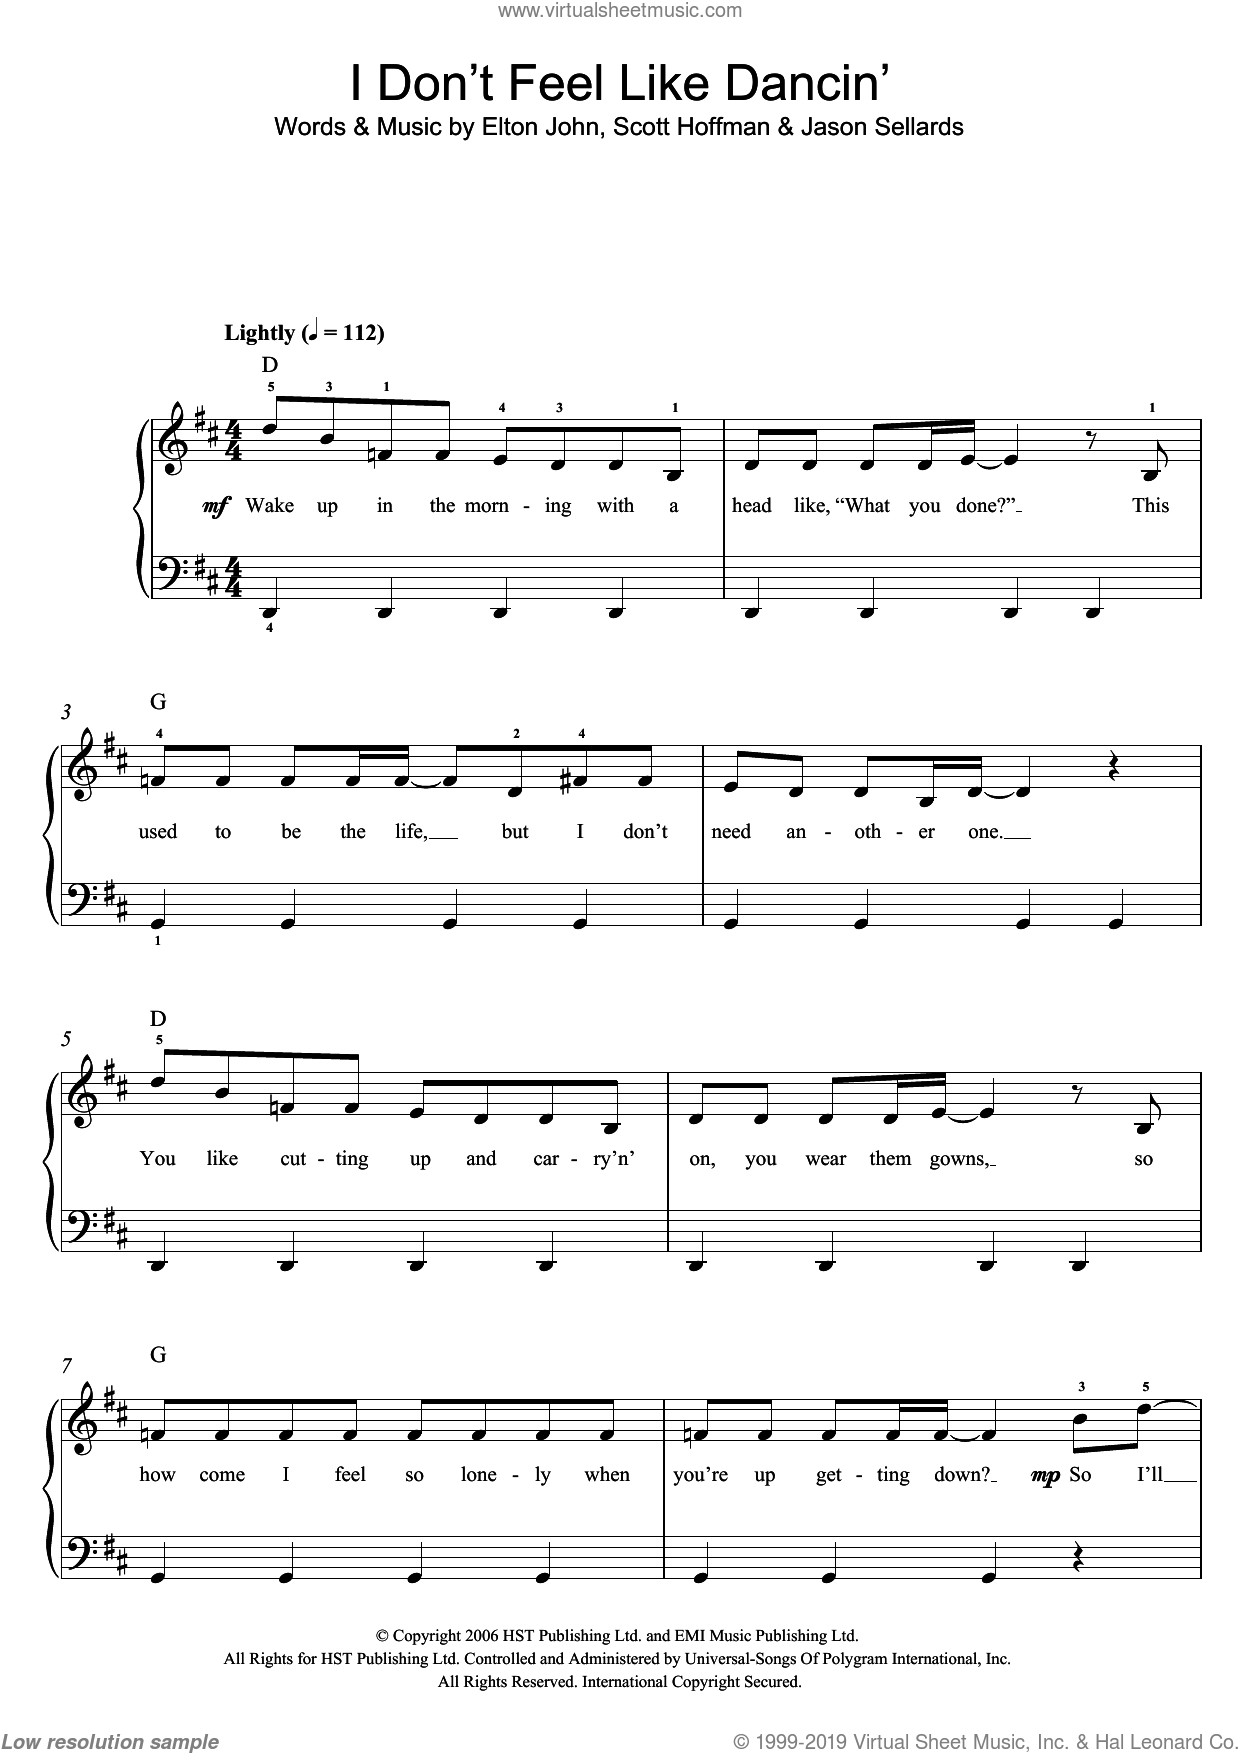 I Don't Feel Like Dancin' sheet music for piano solo (chords) by Scott Hoffman